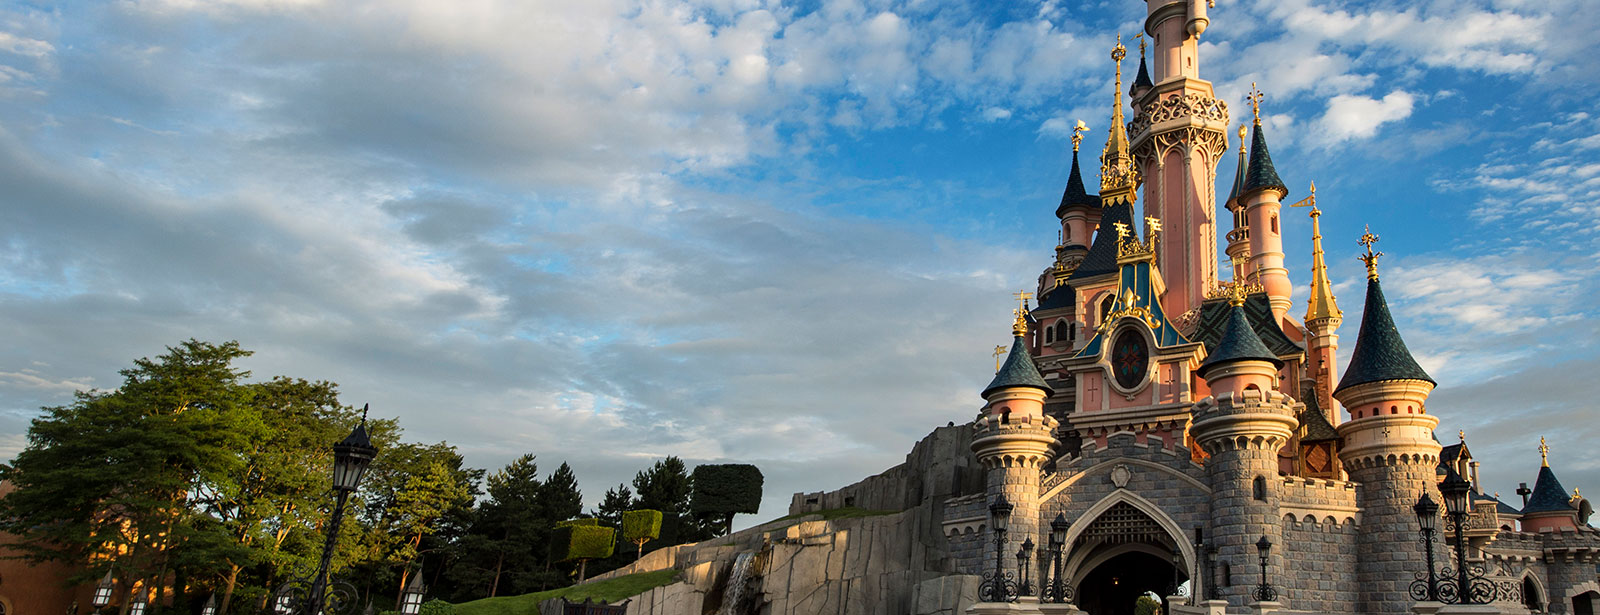 disneyland-paris-frequently-asked-questions-1